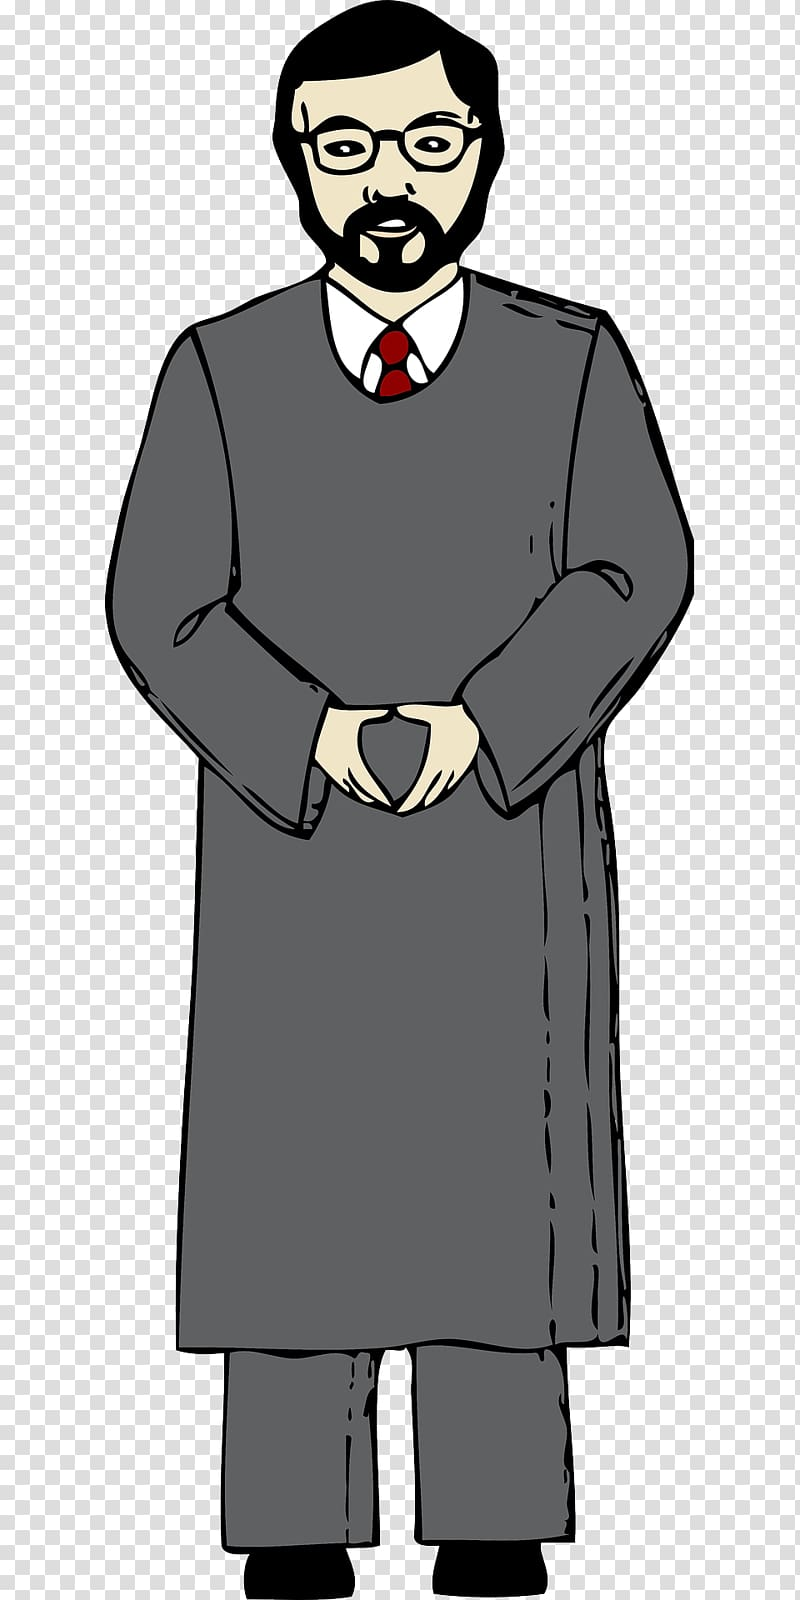 Lance Ito Judge Lawyer , JUDGE transparent background PNG.